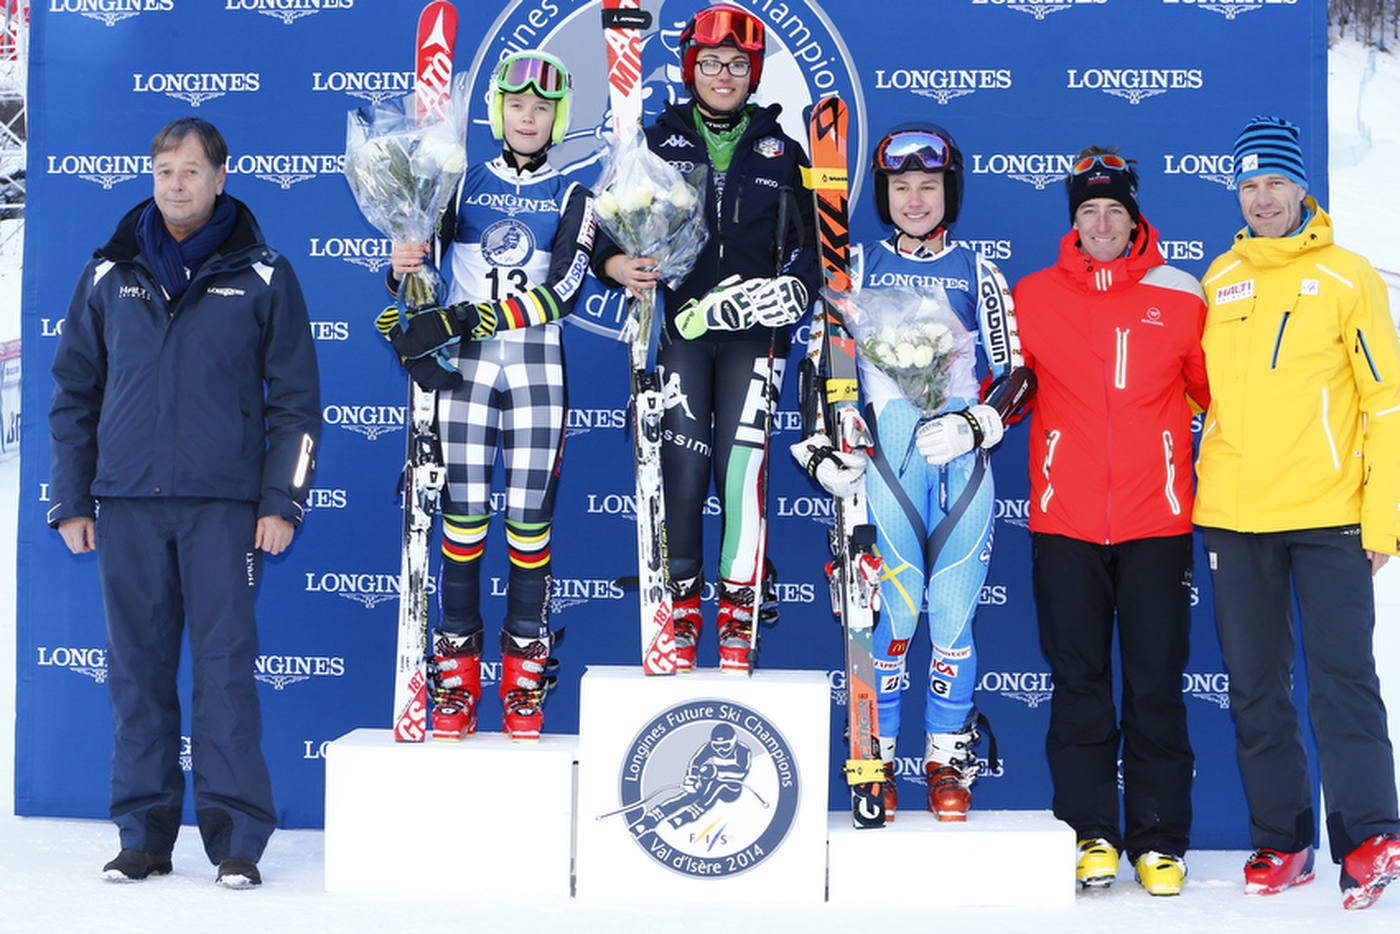 Longines Alpine Skiing Event: Second edition of the Longines Future Ski Champions – A successful 100% female competition in Val d'Isère 2